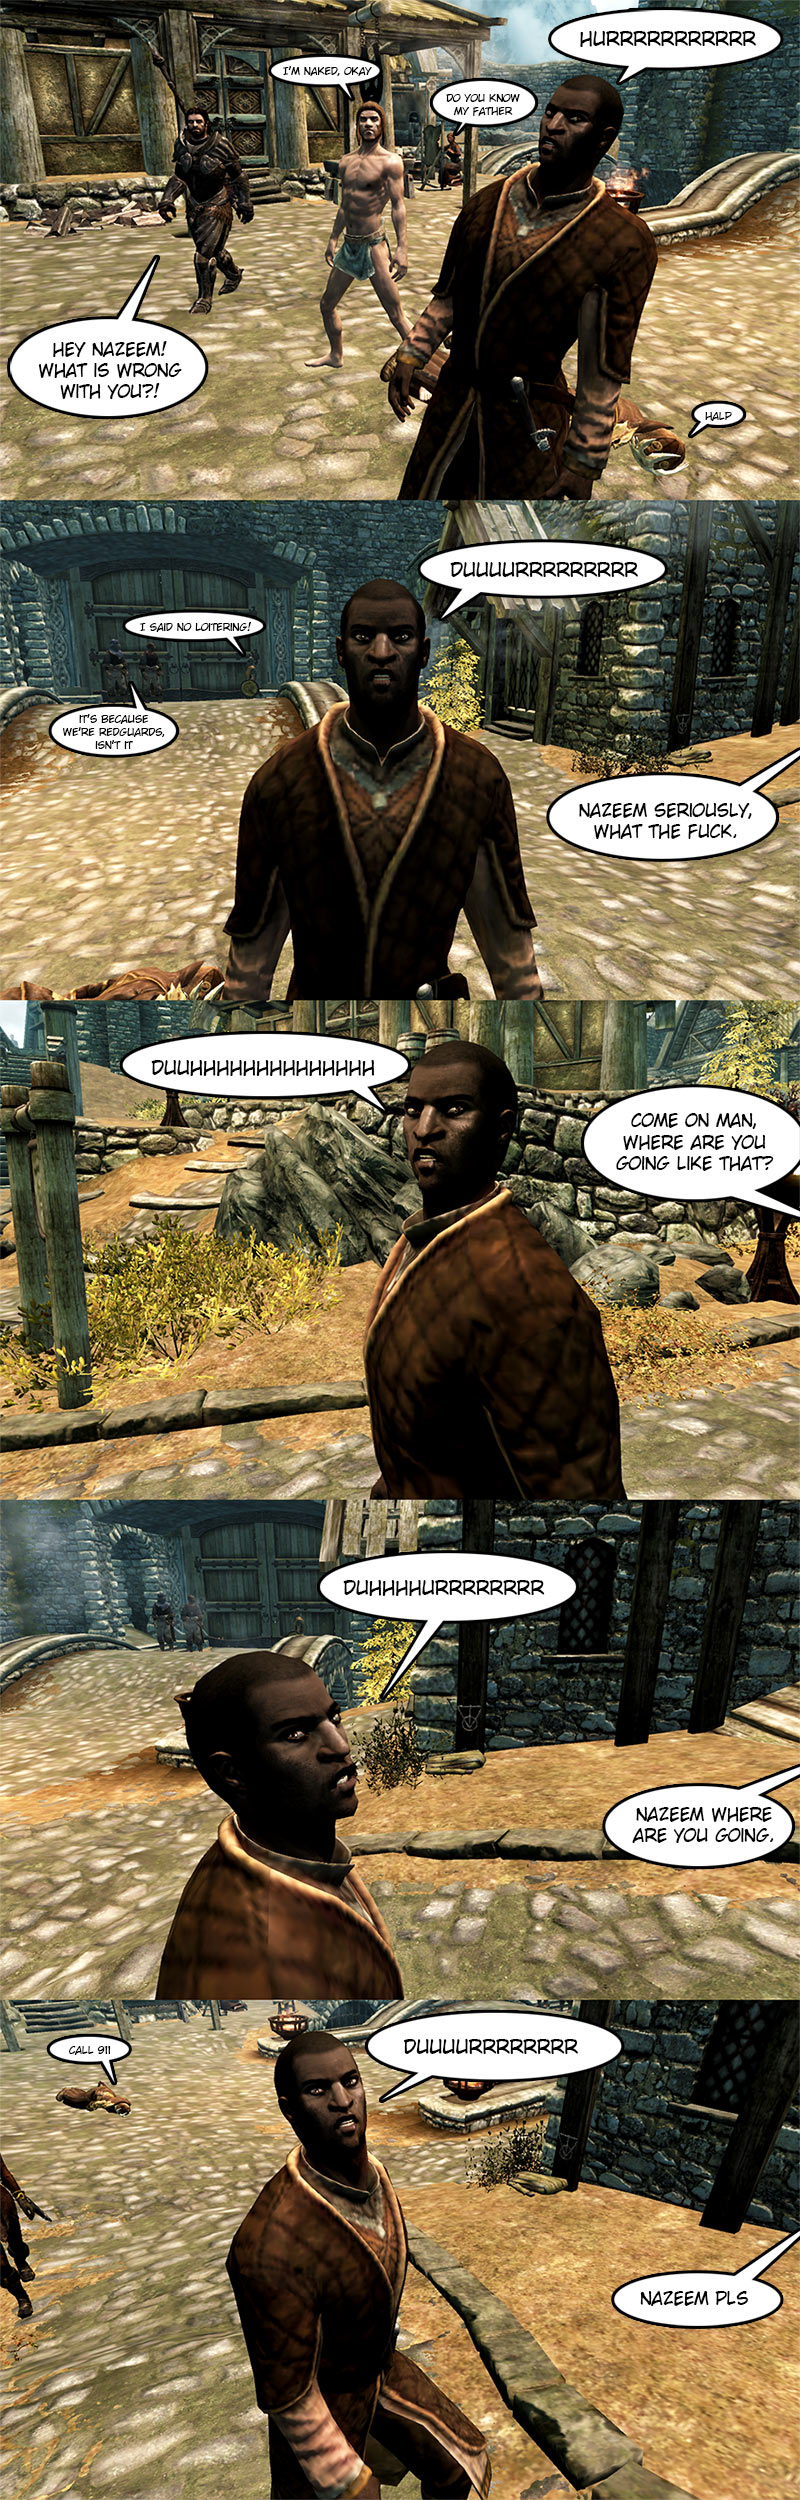 Hey Nazeem by spaceskeleton